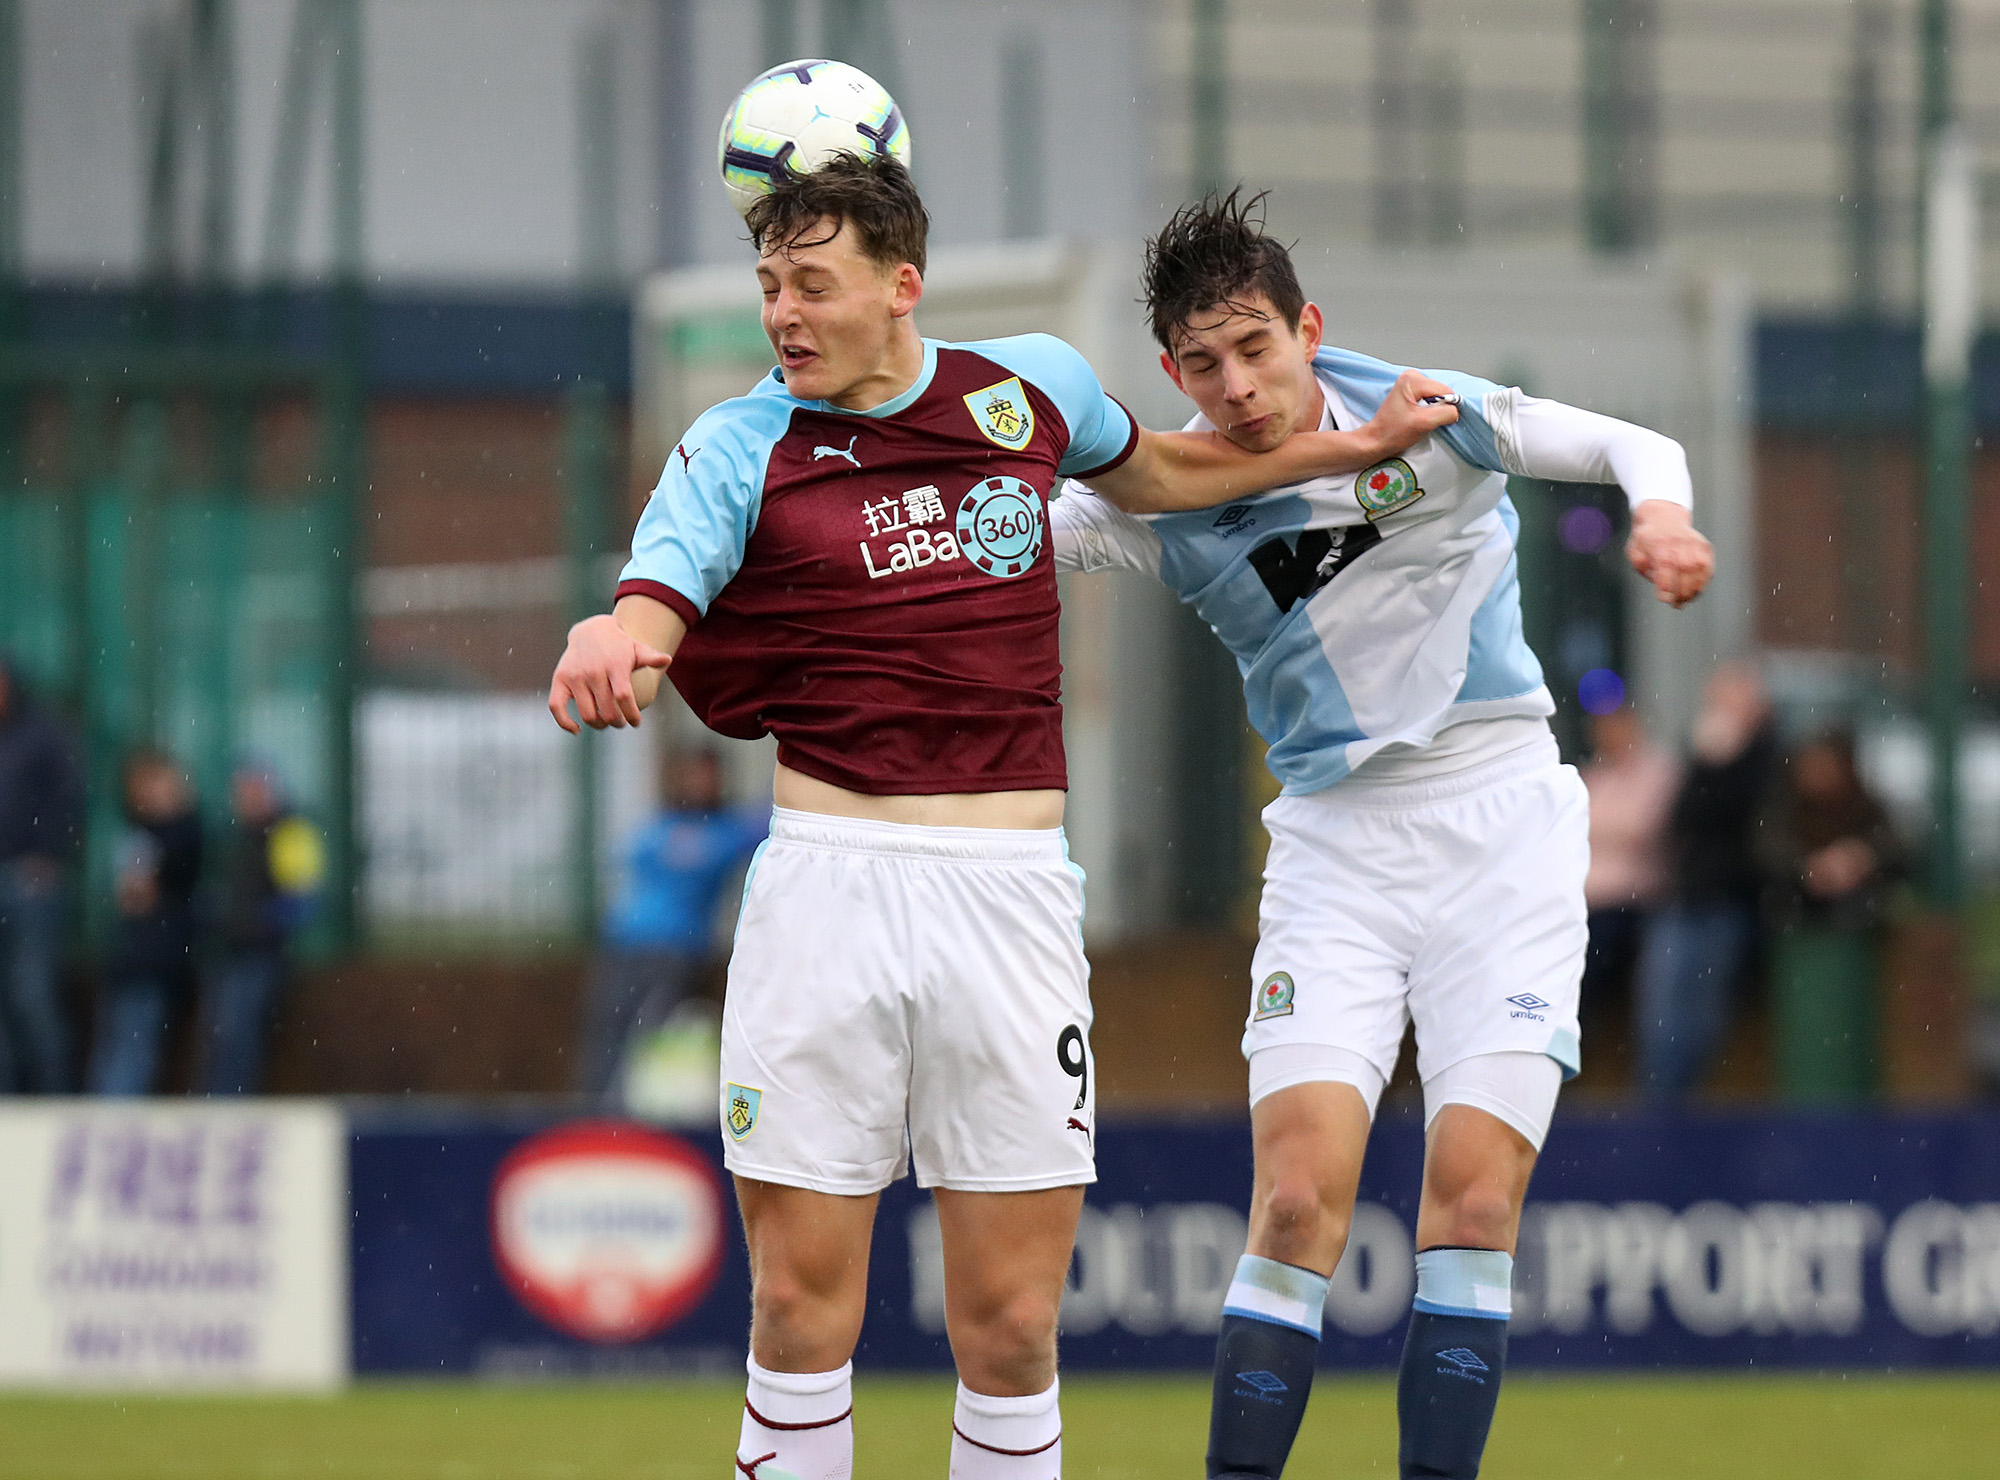 New-look Burnley Under-23s get back on track with victory